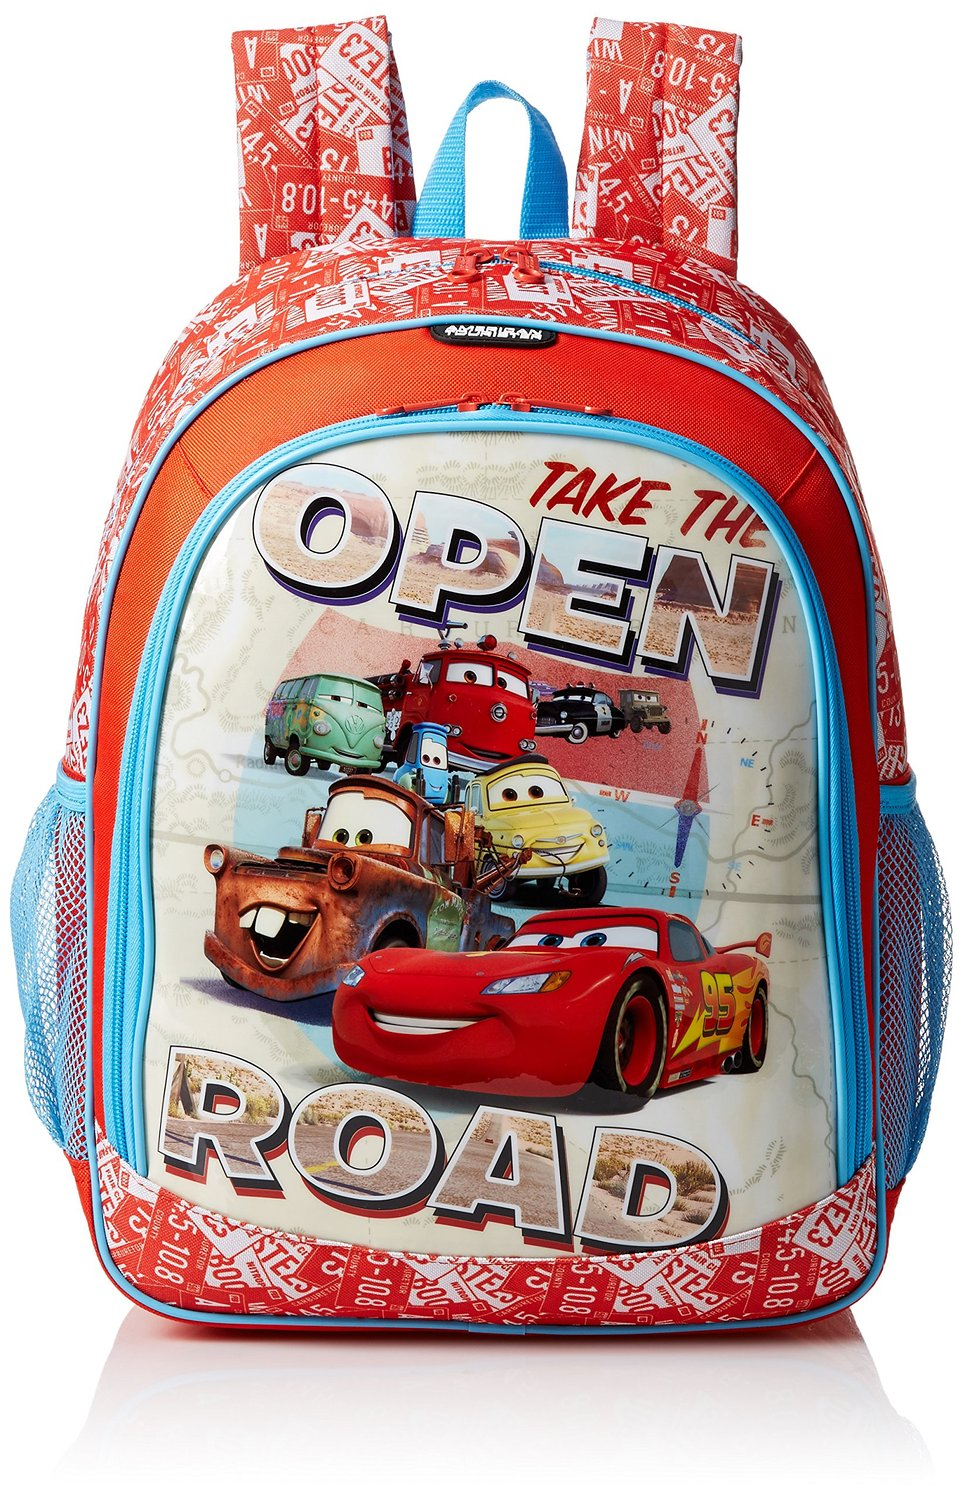 be8d5198594f Get Quotations · American Tourister 74721 Disney Cars Children s Backpack